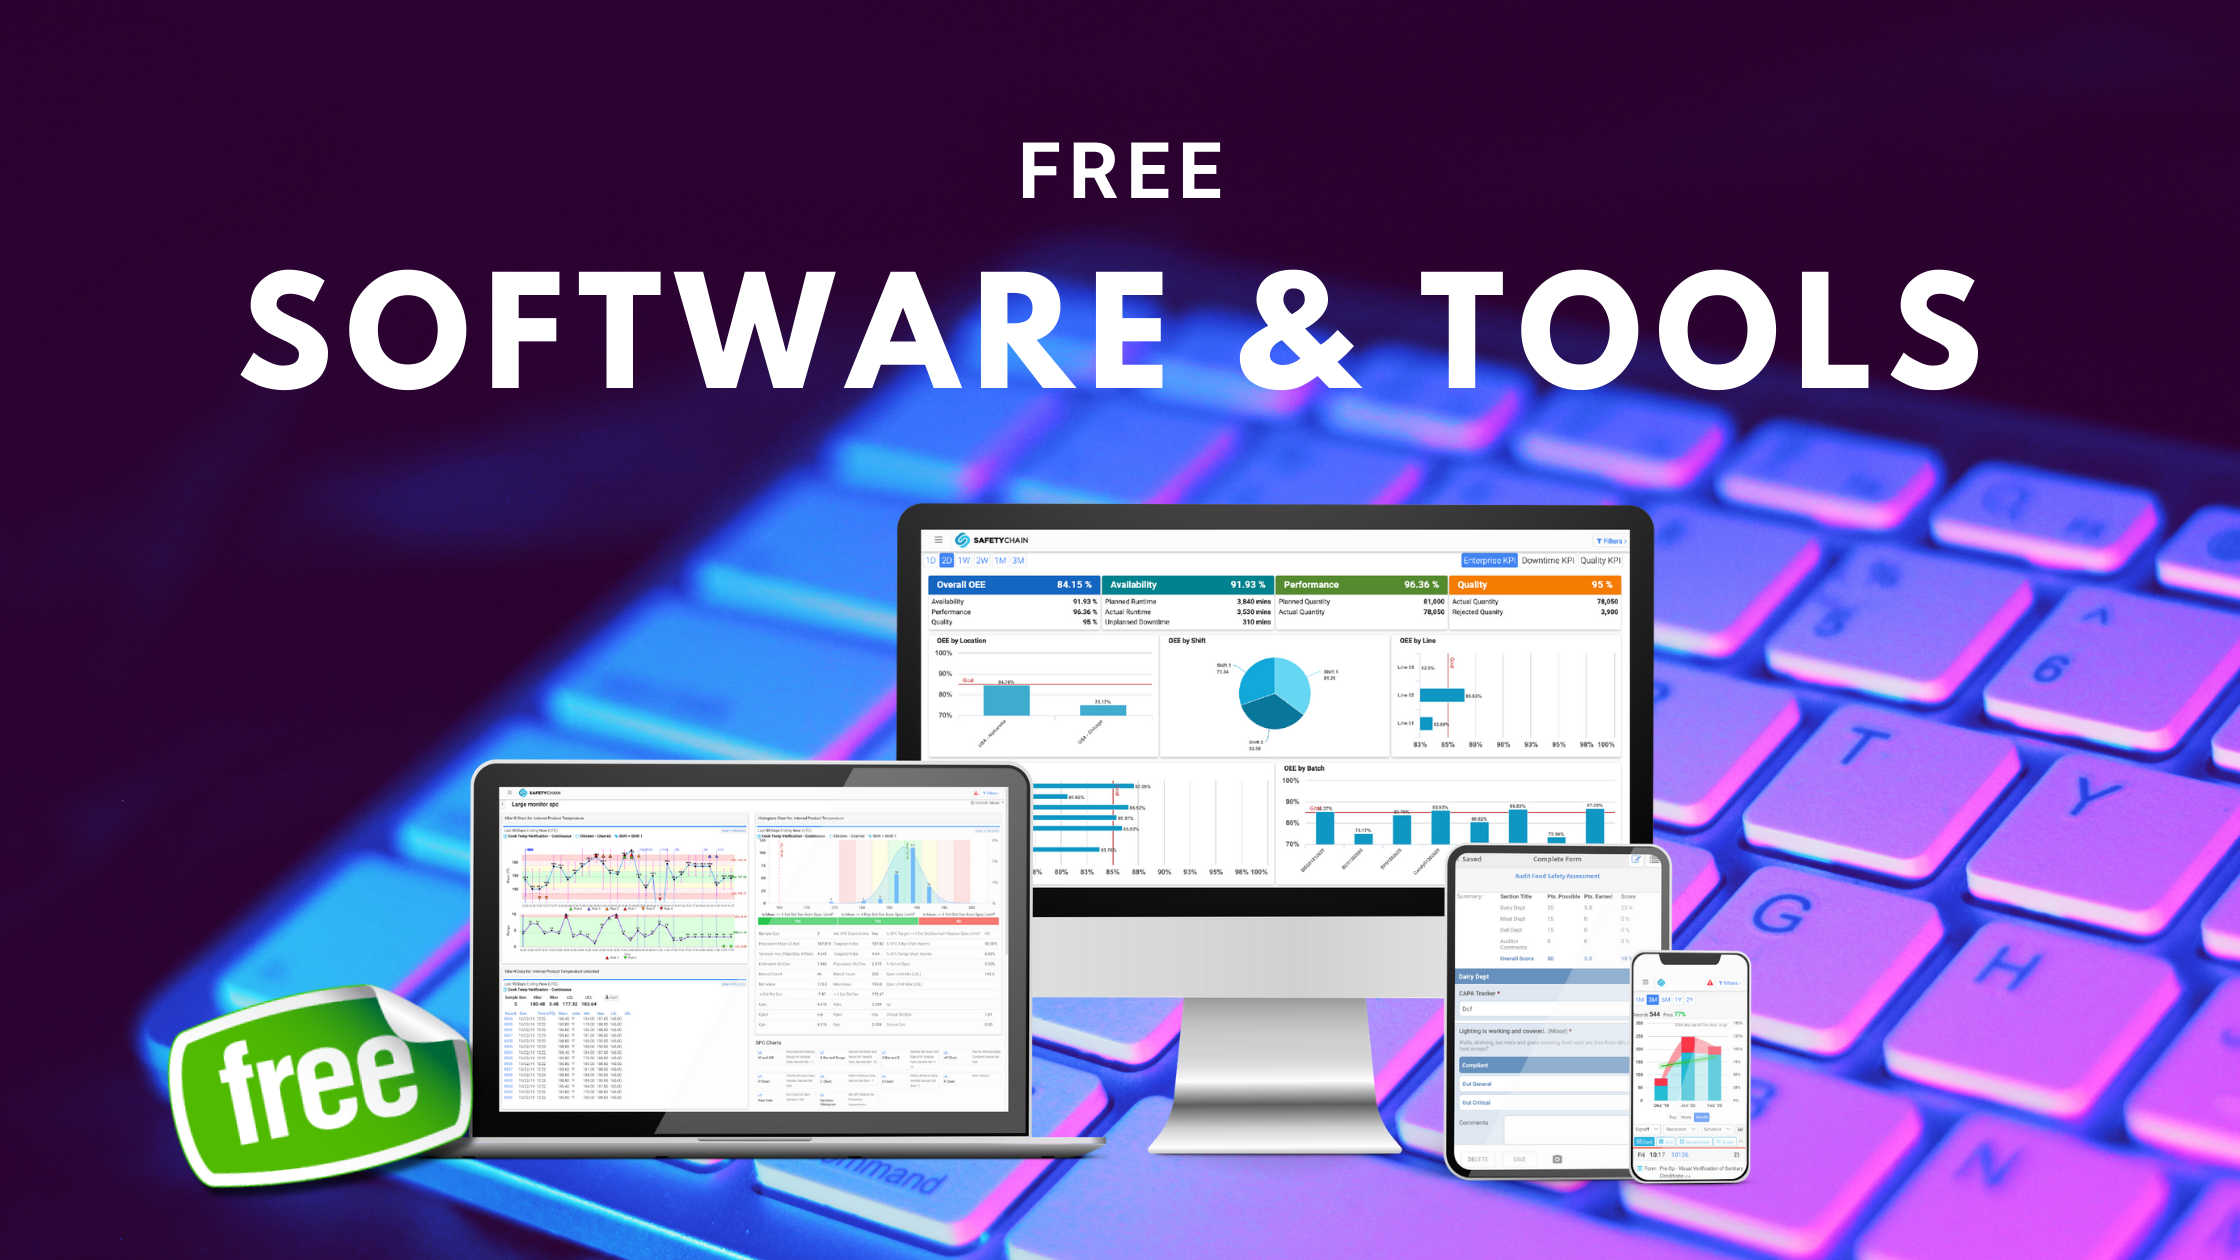 Free Software Tools By M/s VIKASH TECH